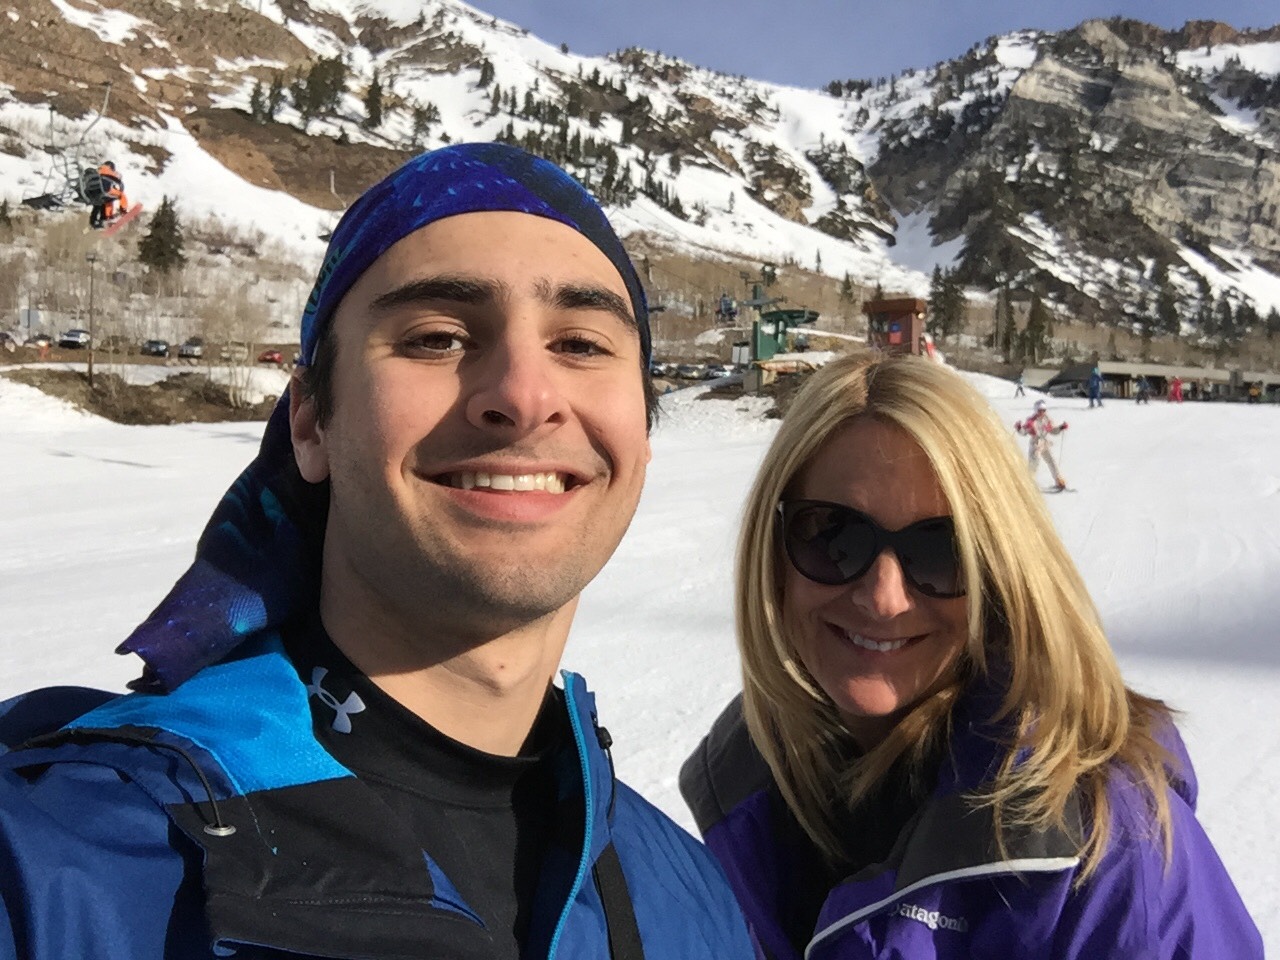 Jesse Galganov with his mother Alisa Clamen in front of snowy mountains